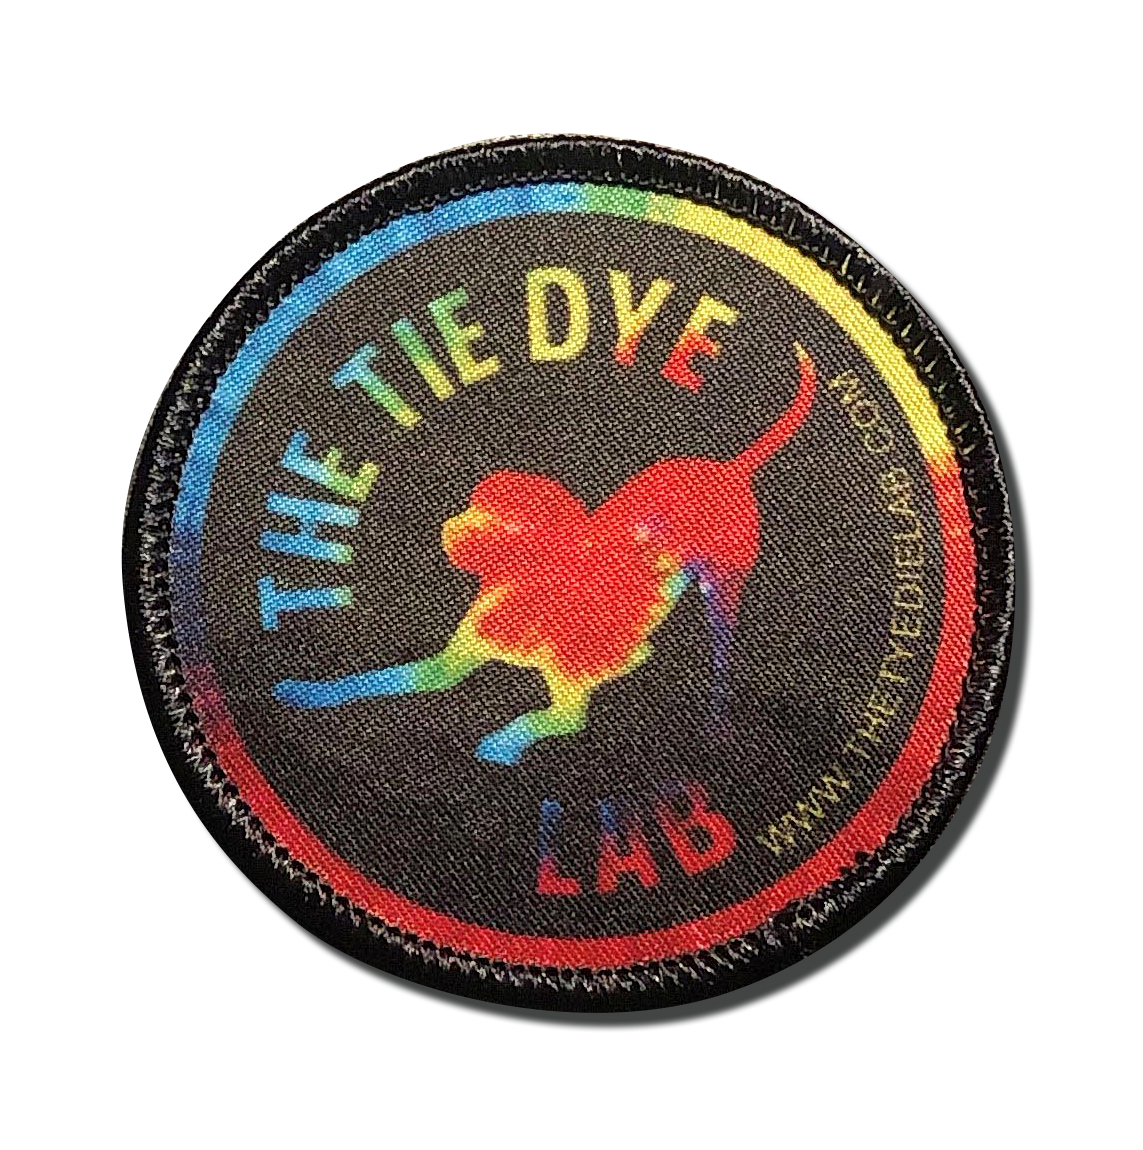 The Tie Dye Lab Photo Patch from A-B Emblem